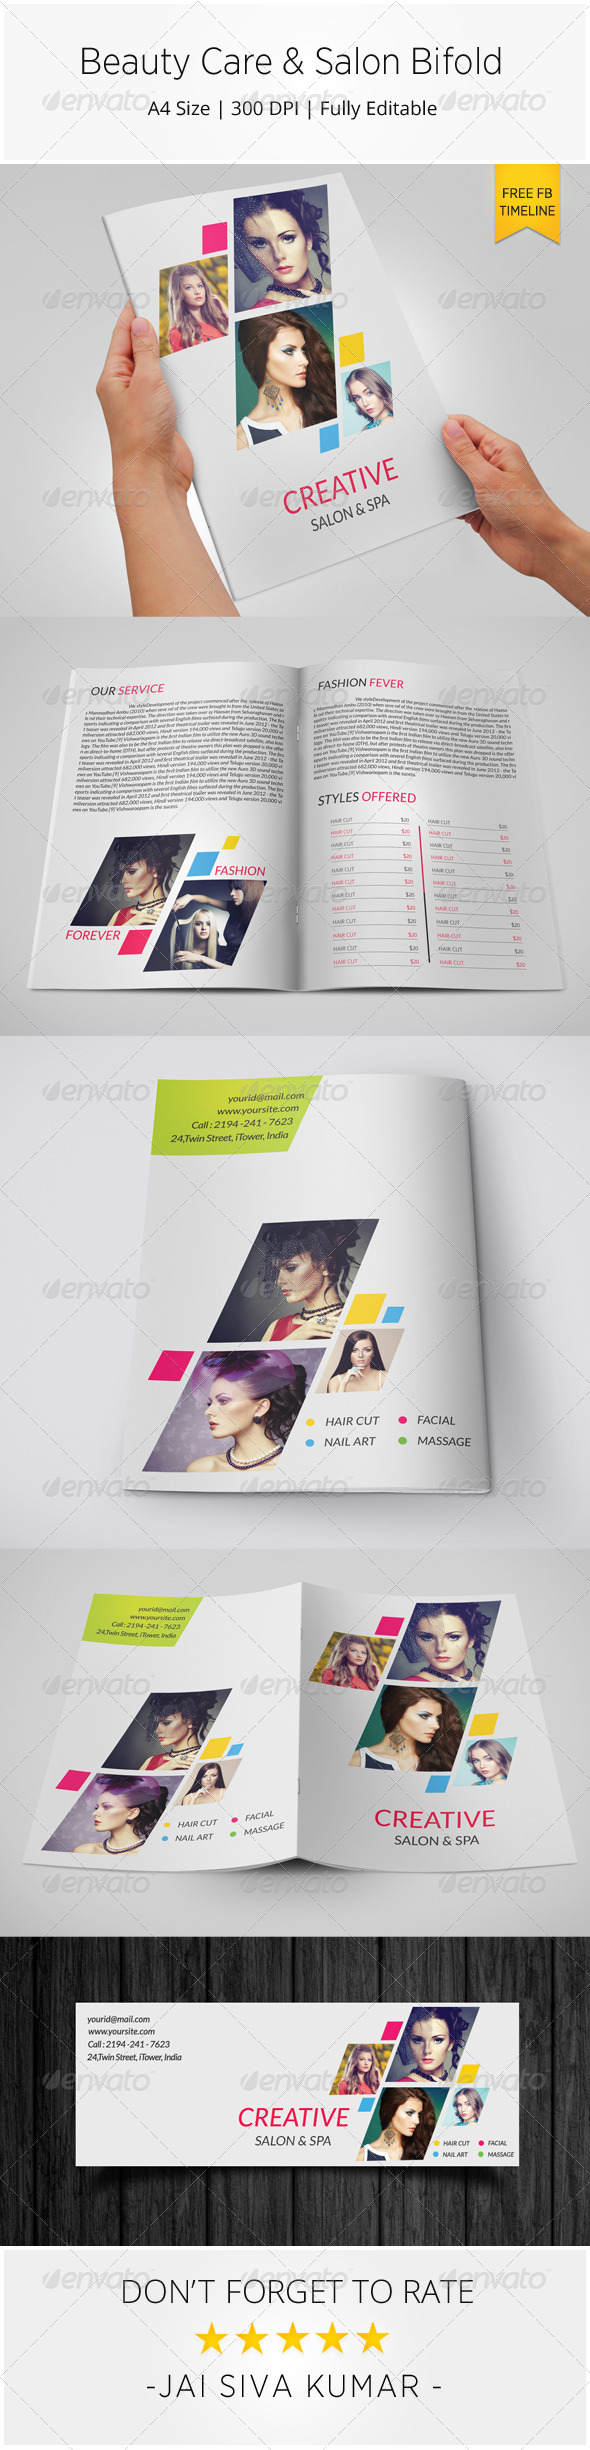 GraphicRiver Beauty Care & Salon Bi-fold Brochure Template 8046470